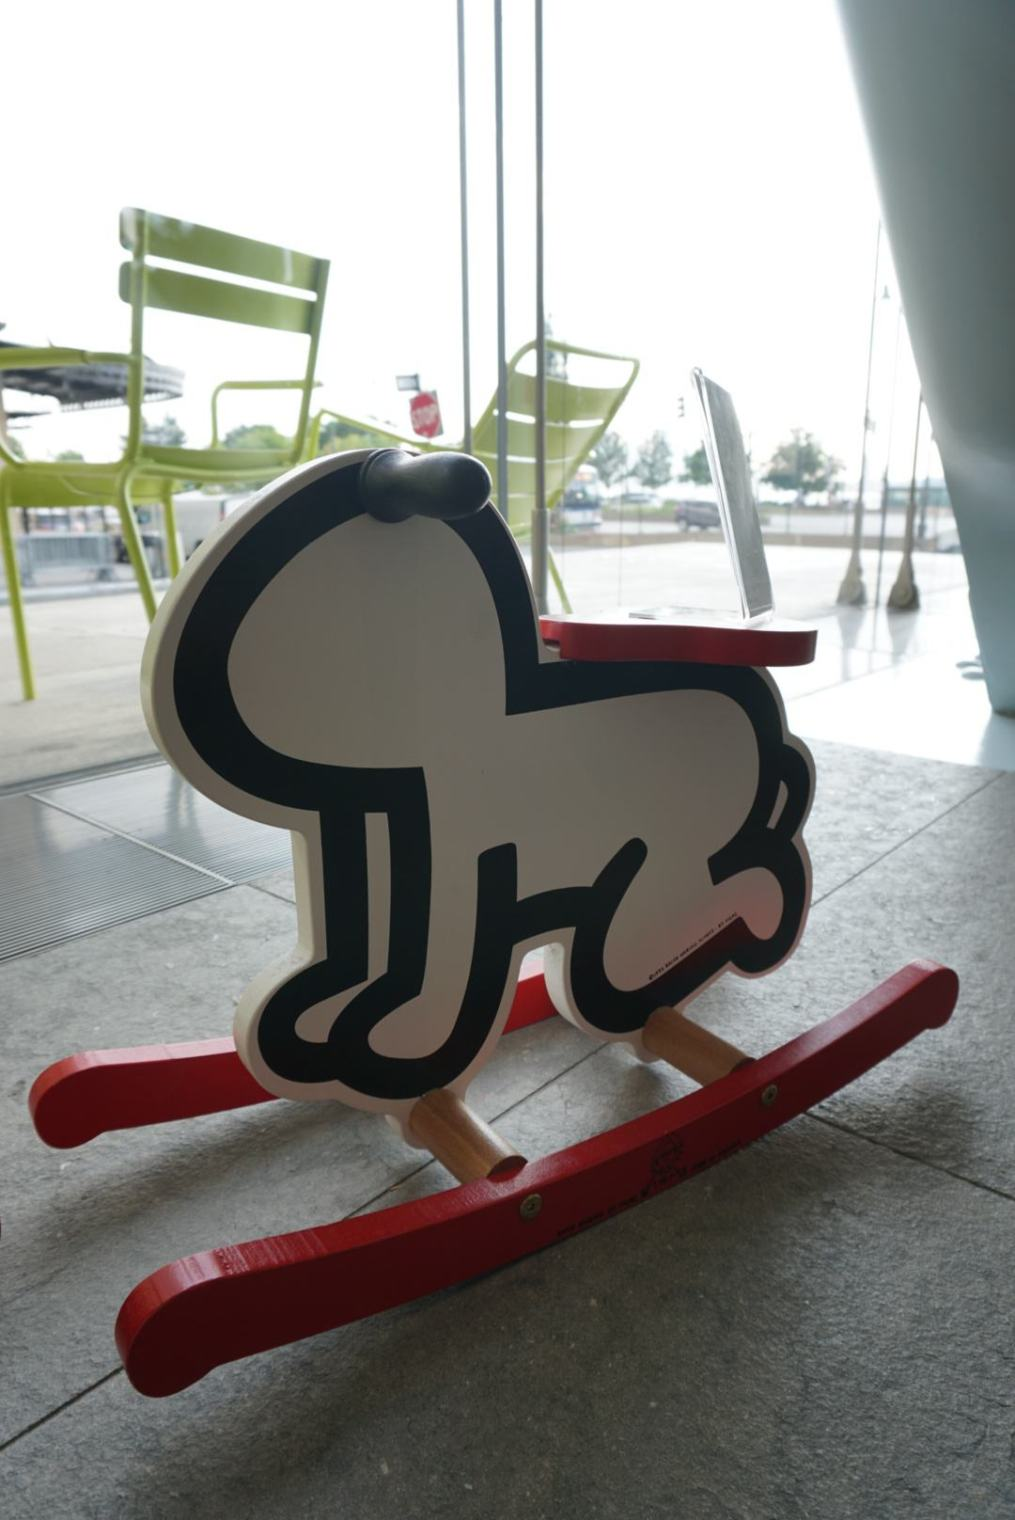 Keith Haring baby rocker (Whitney Museum of American Art Gift Shop)